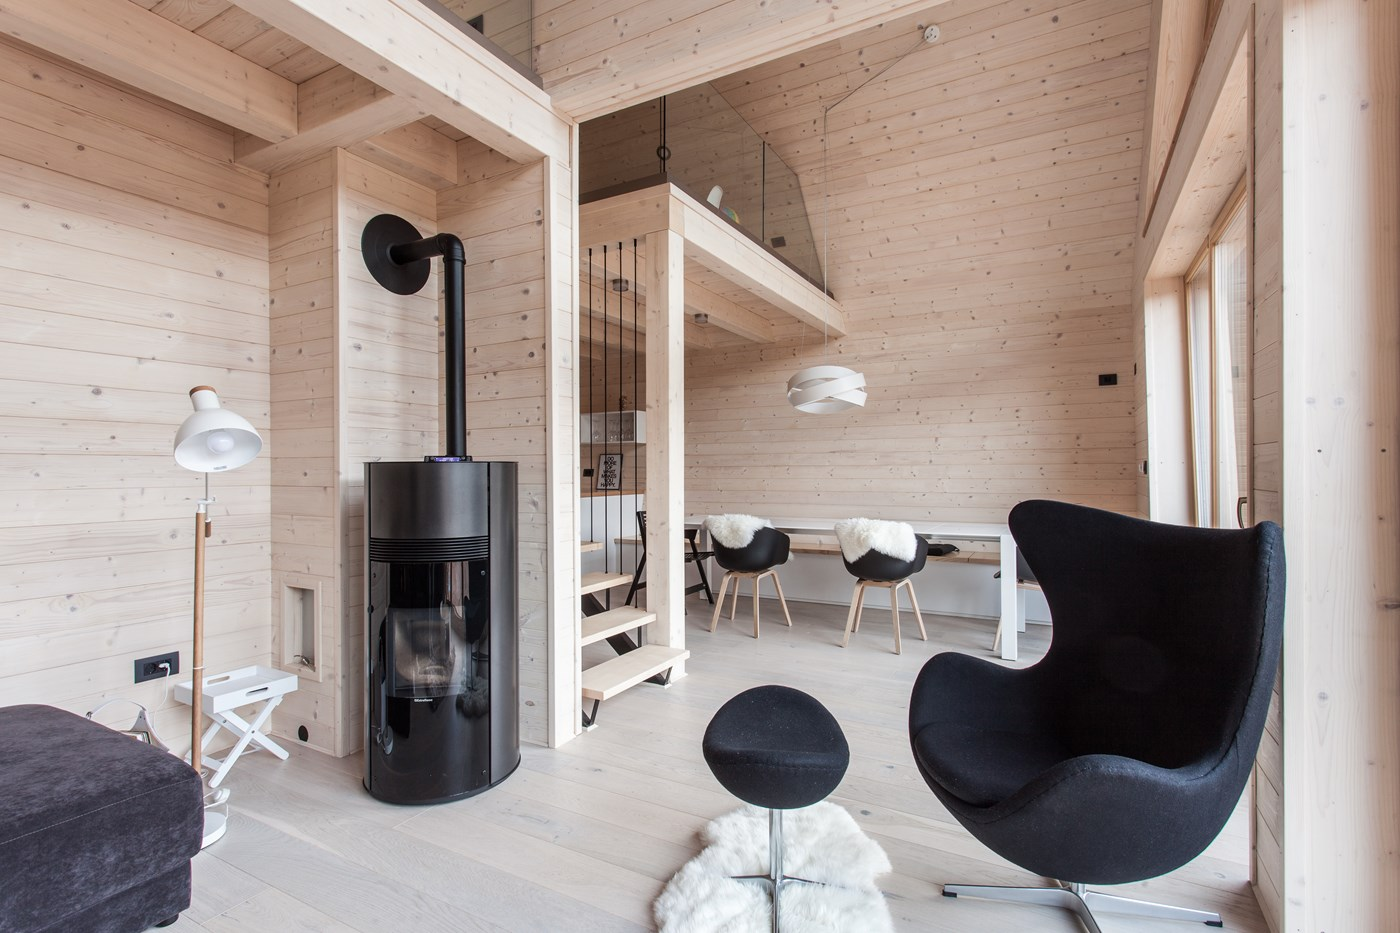 Wooden interior with fireplace, cabin design